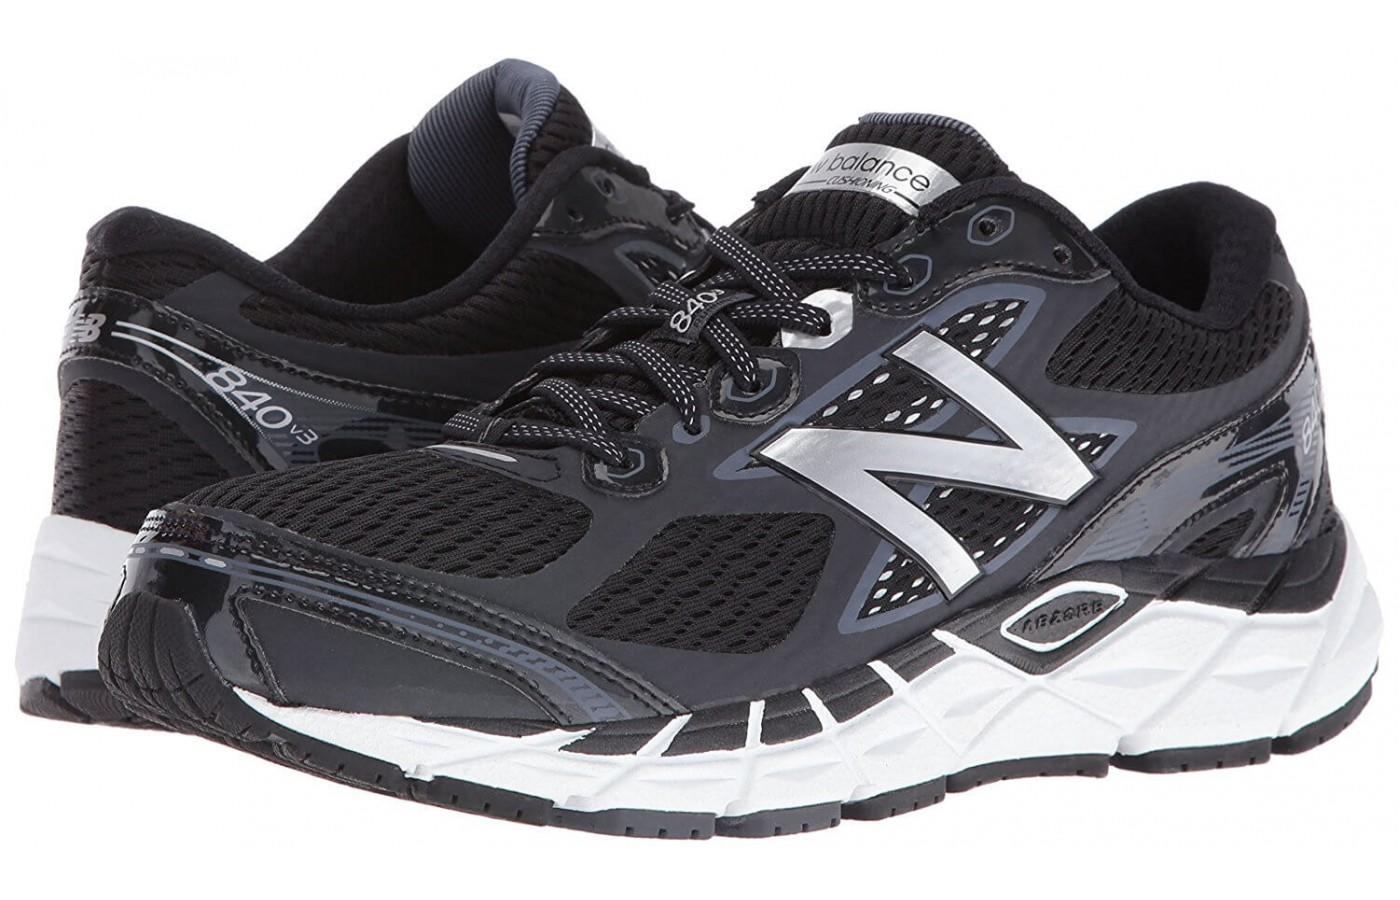 The New Balance 840 v3 is a comfortable shoe especially for those with foot pain